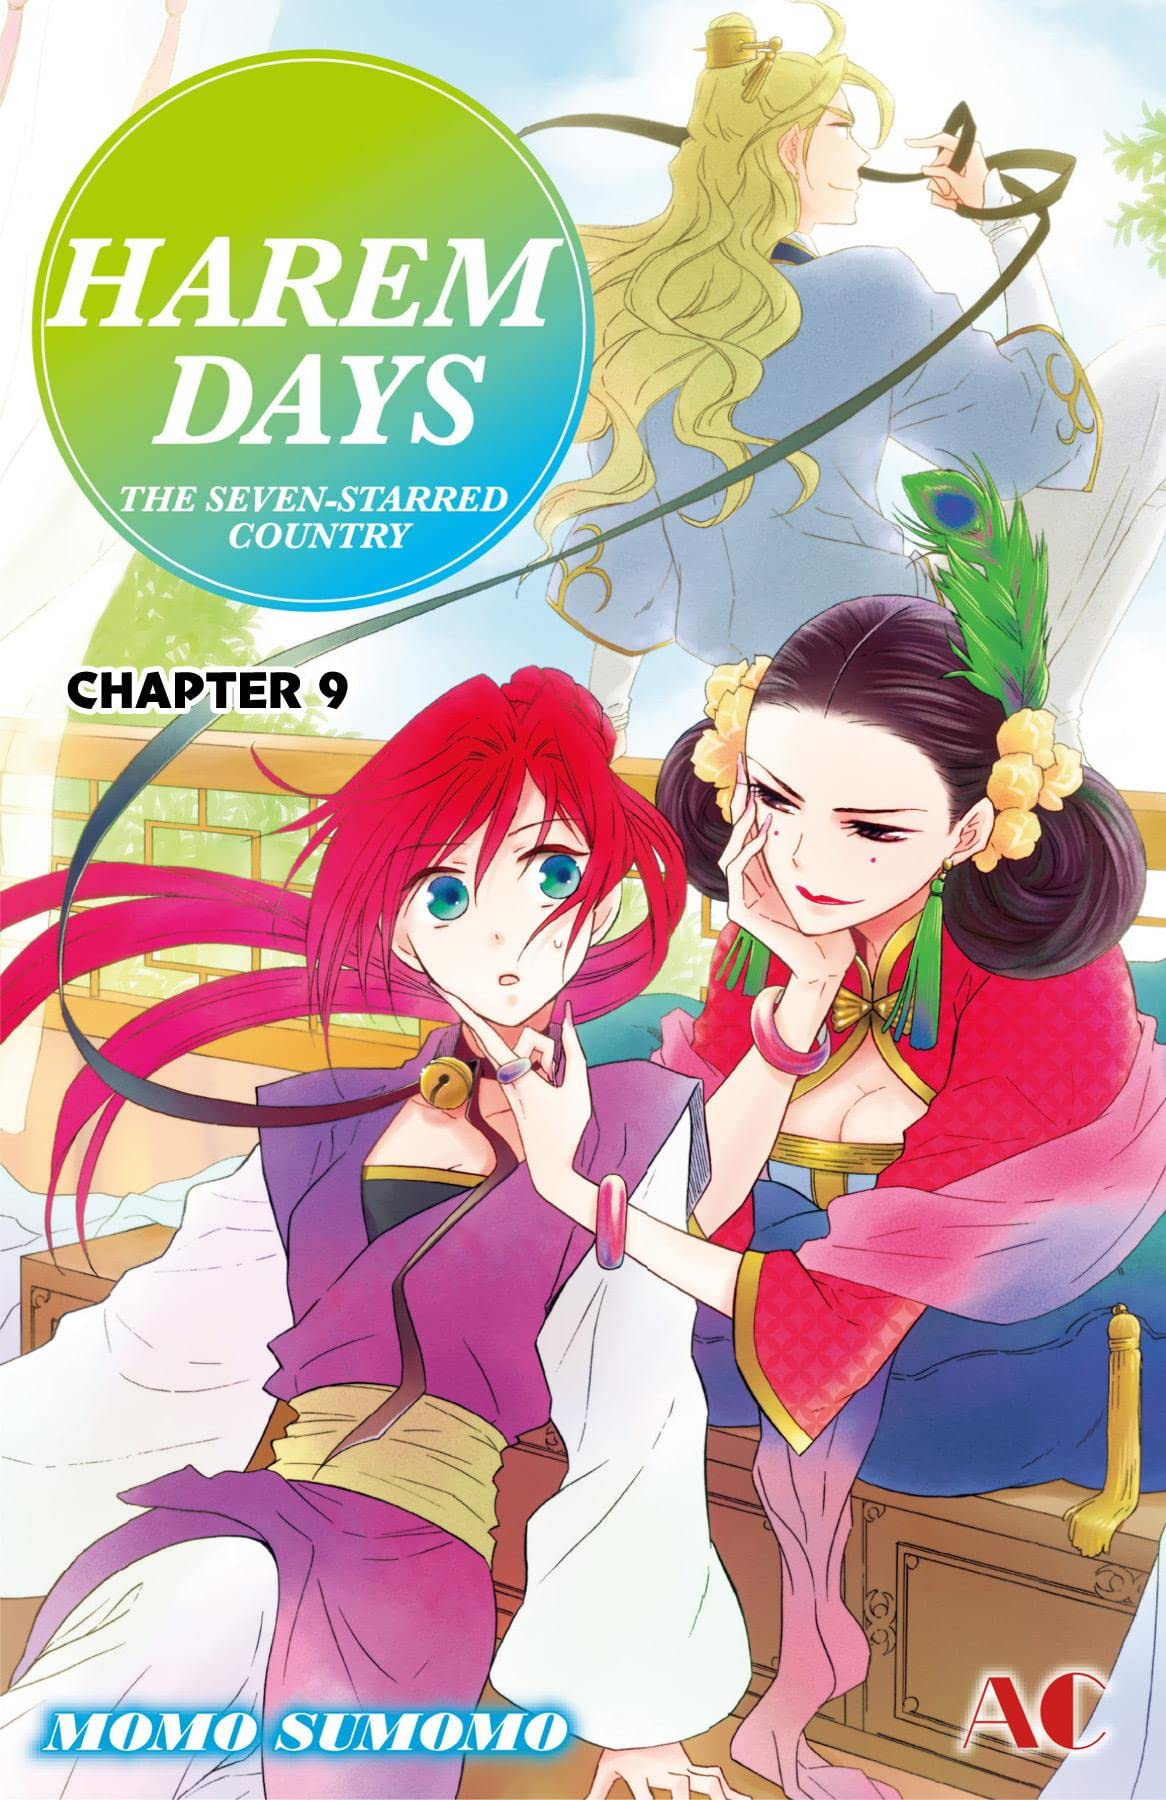 HAREM DAYS THE SEVEN-STARRED COUNTRY #9